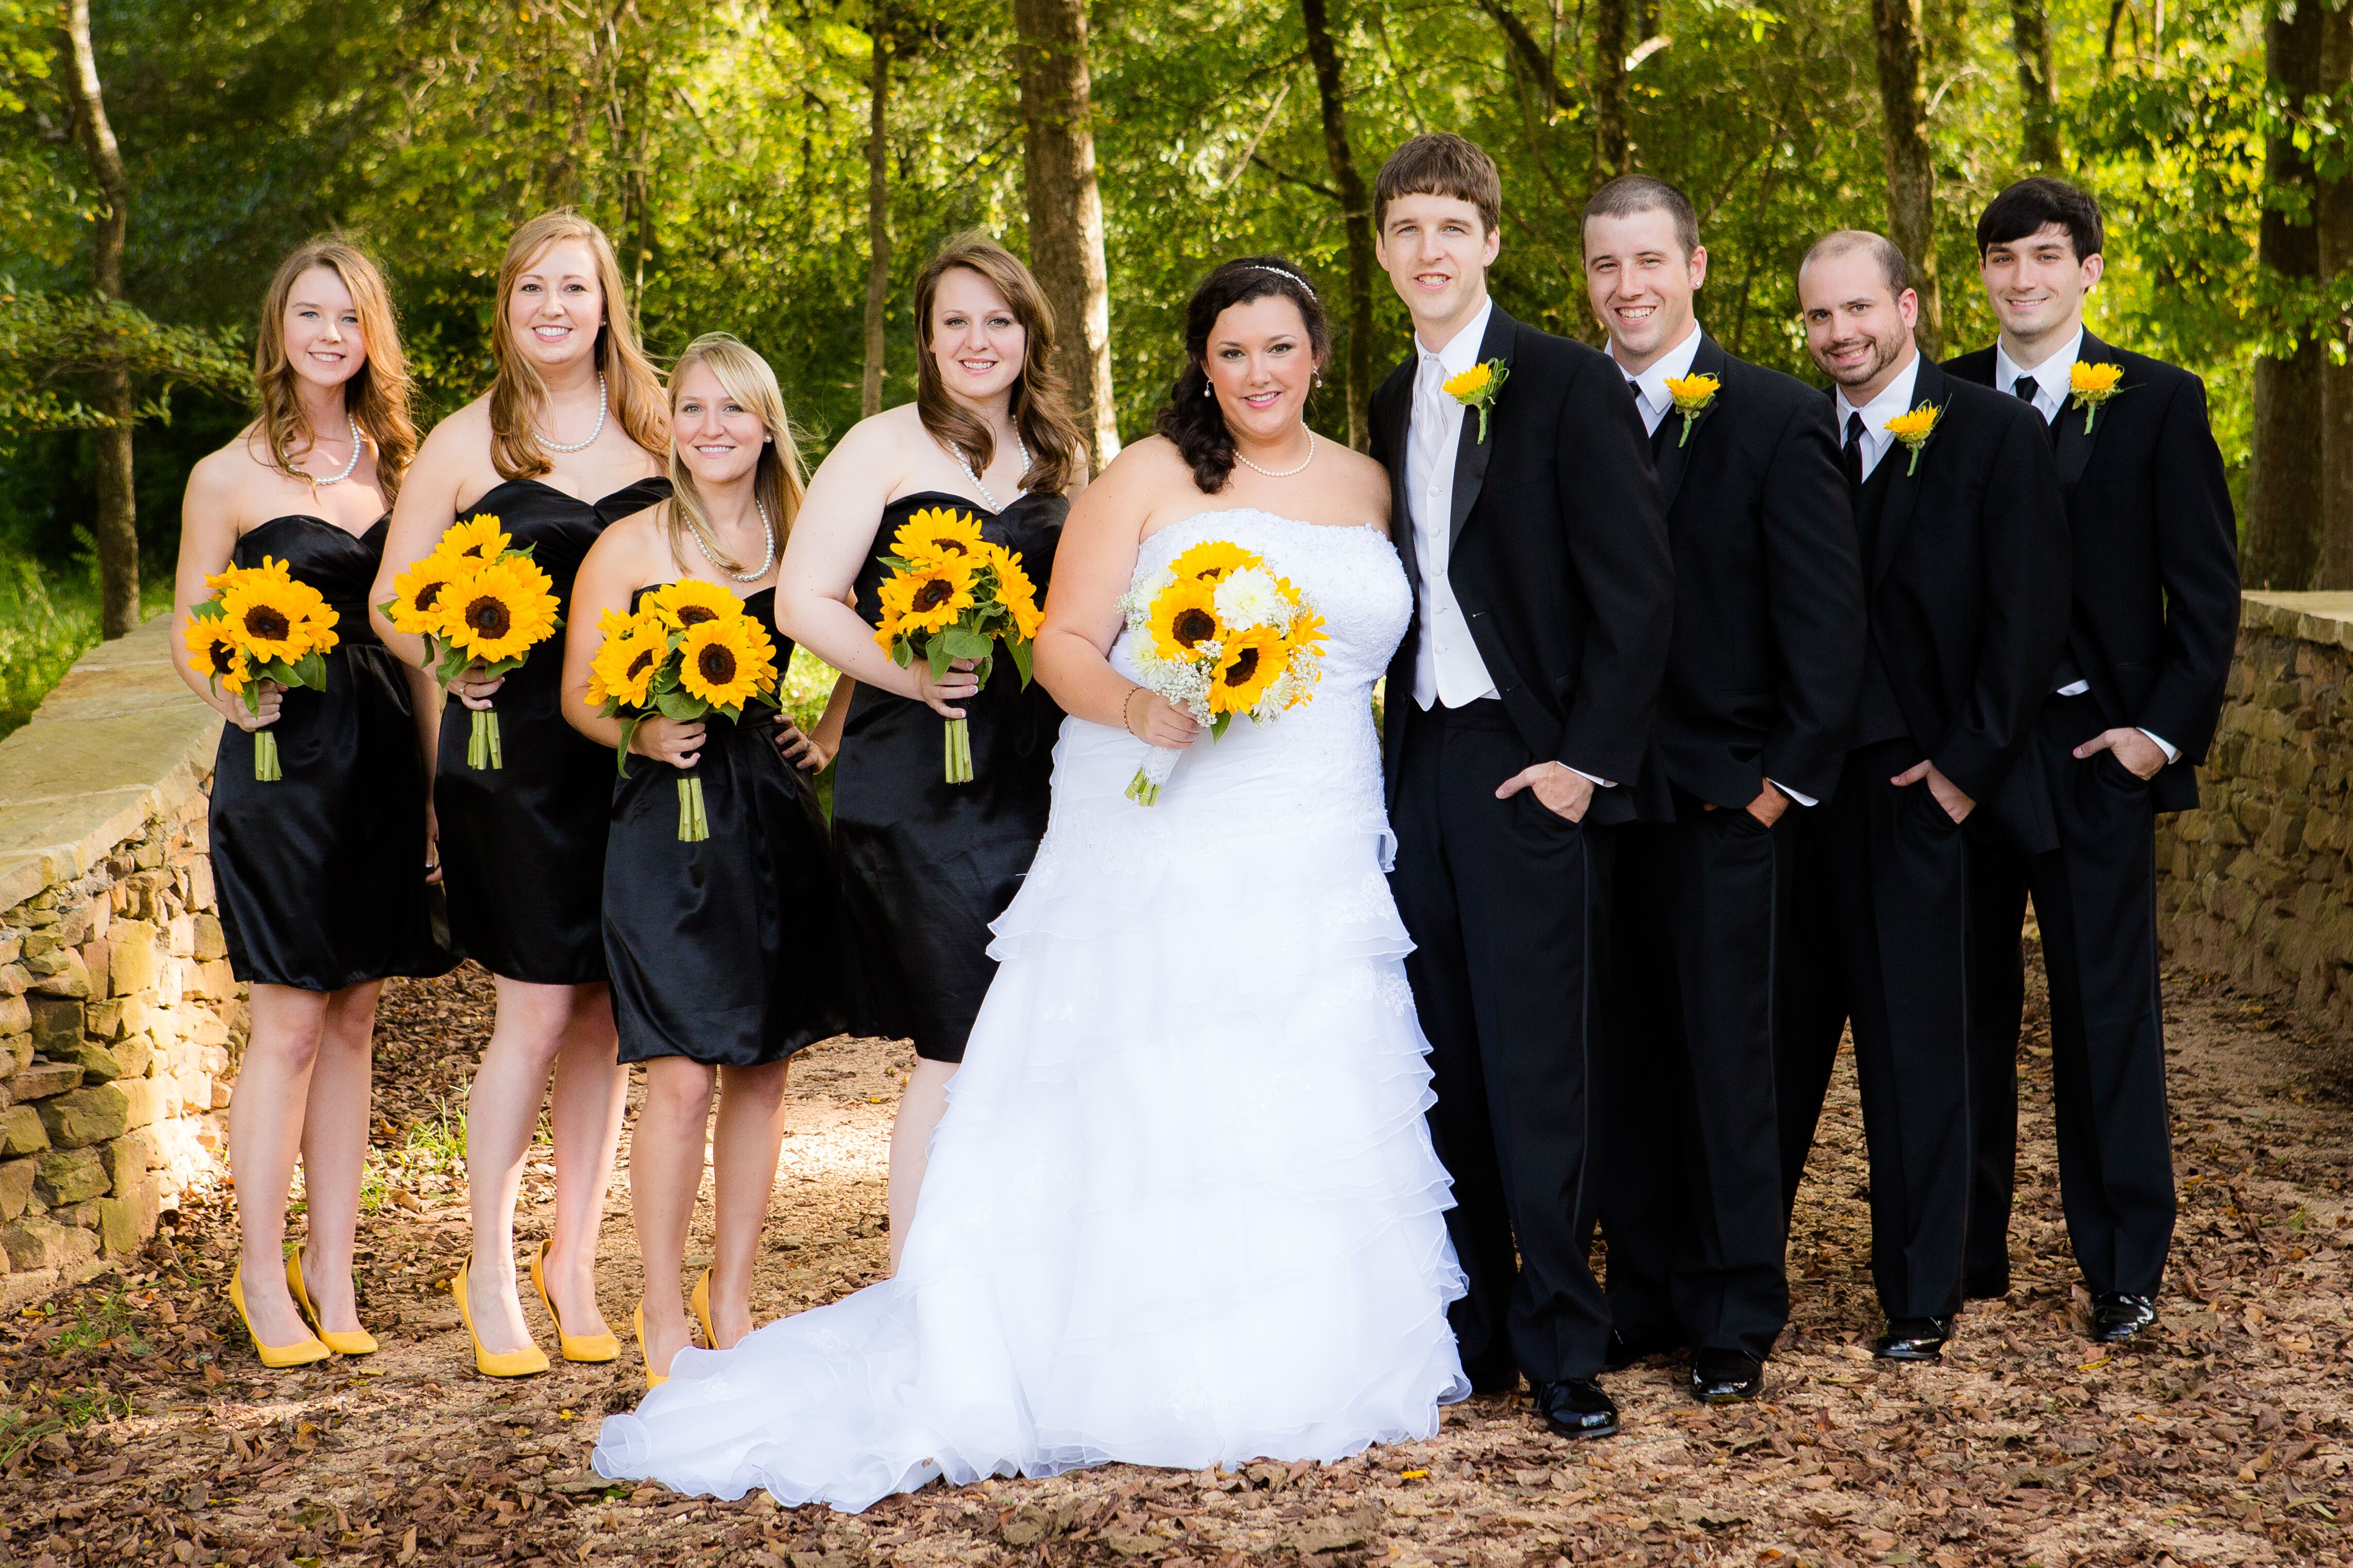 Black And White Wedding Party With Yellow Flowers